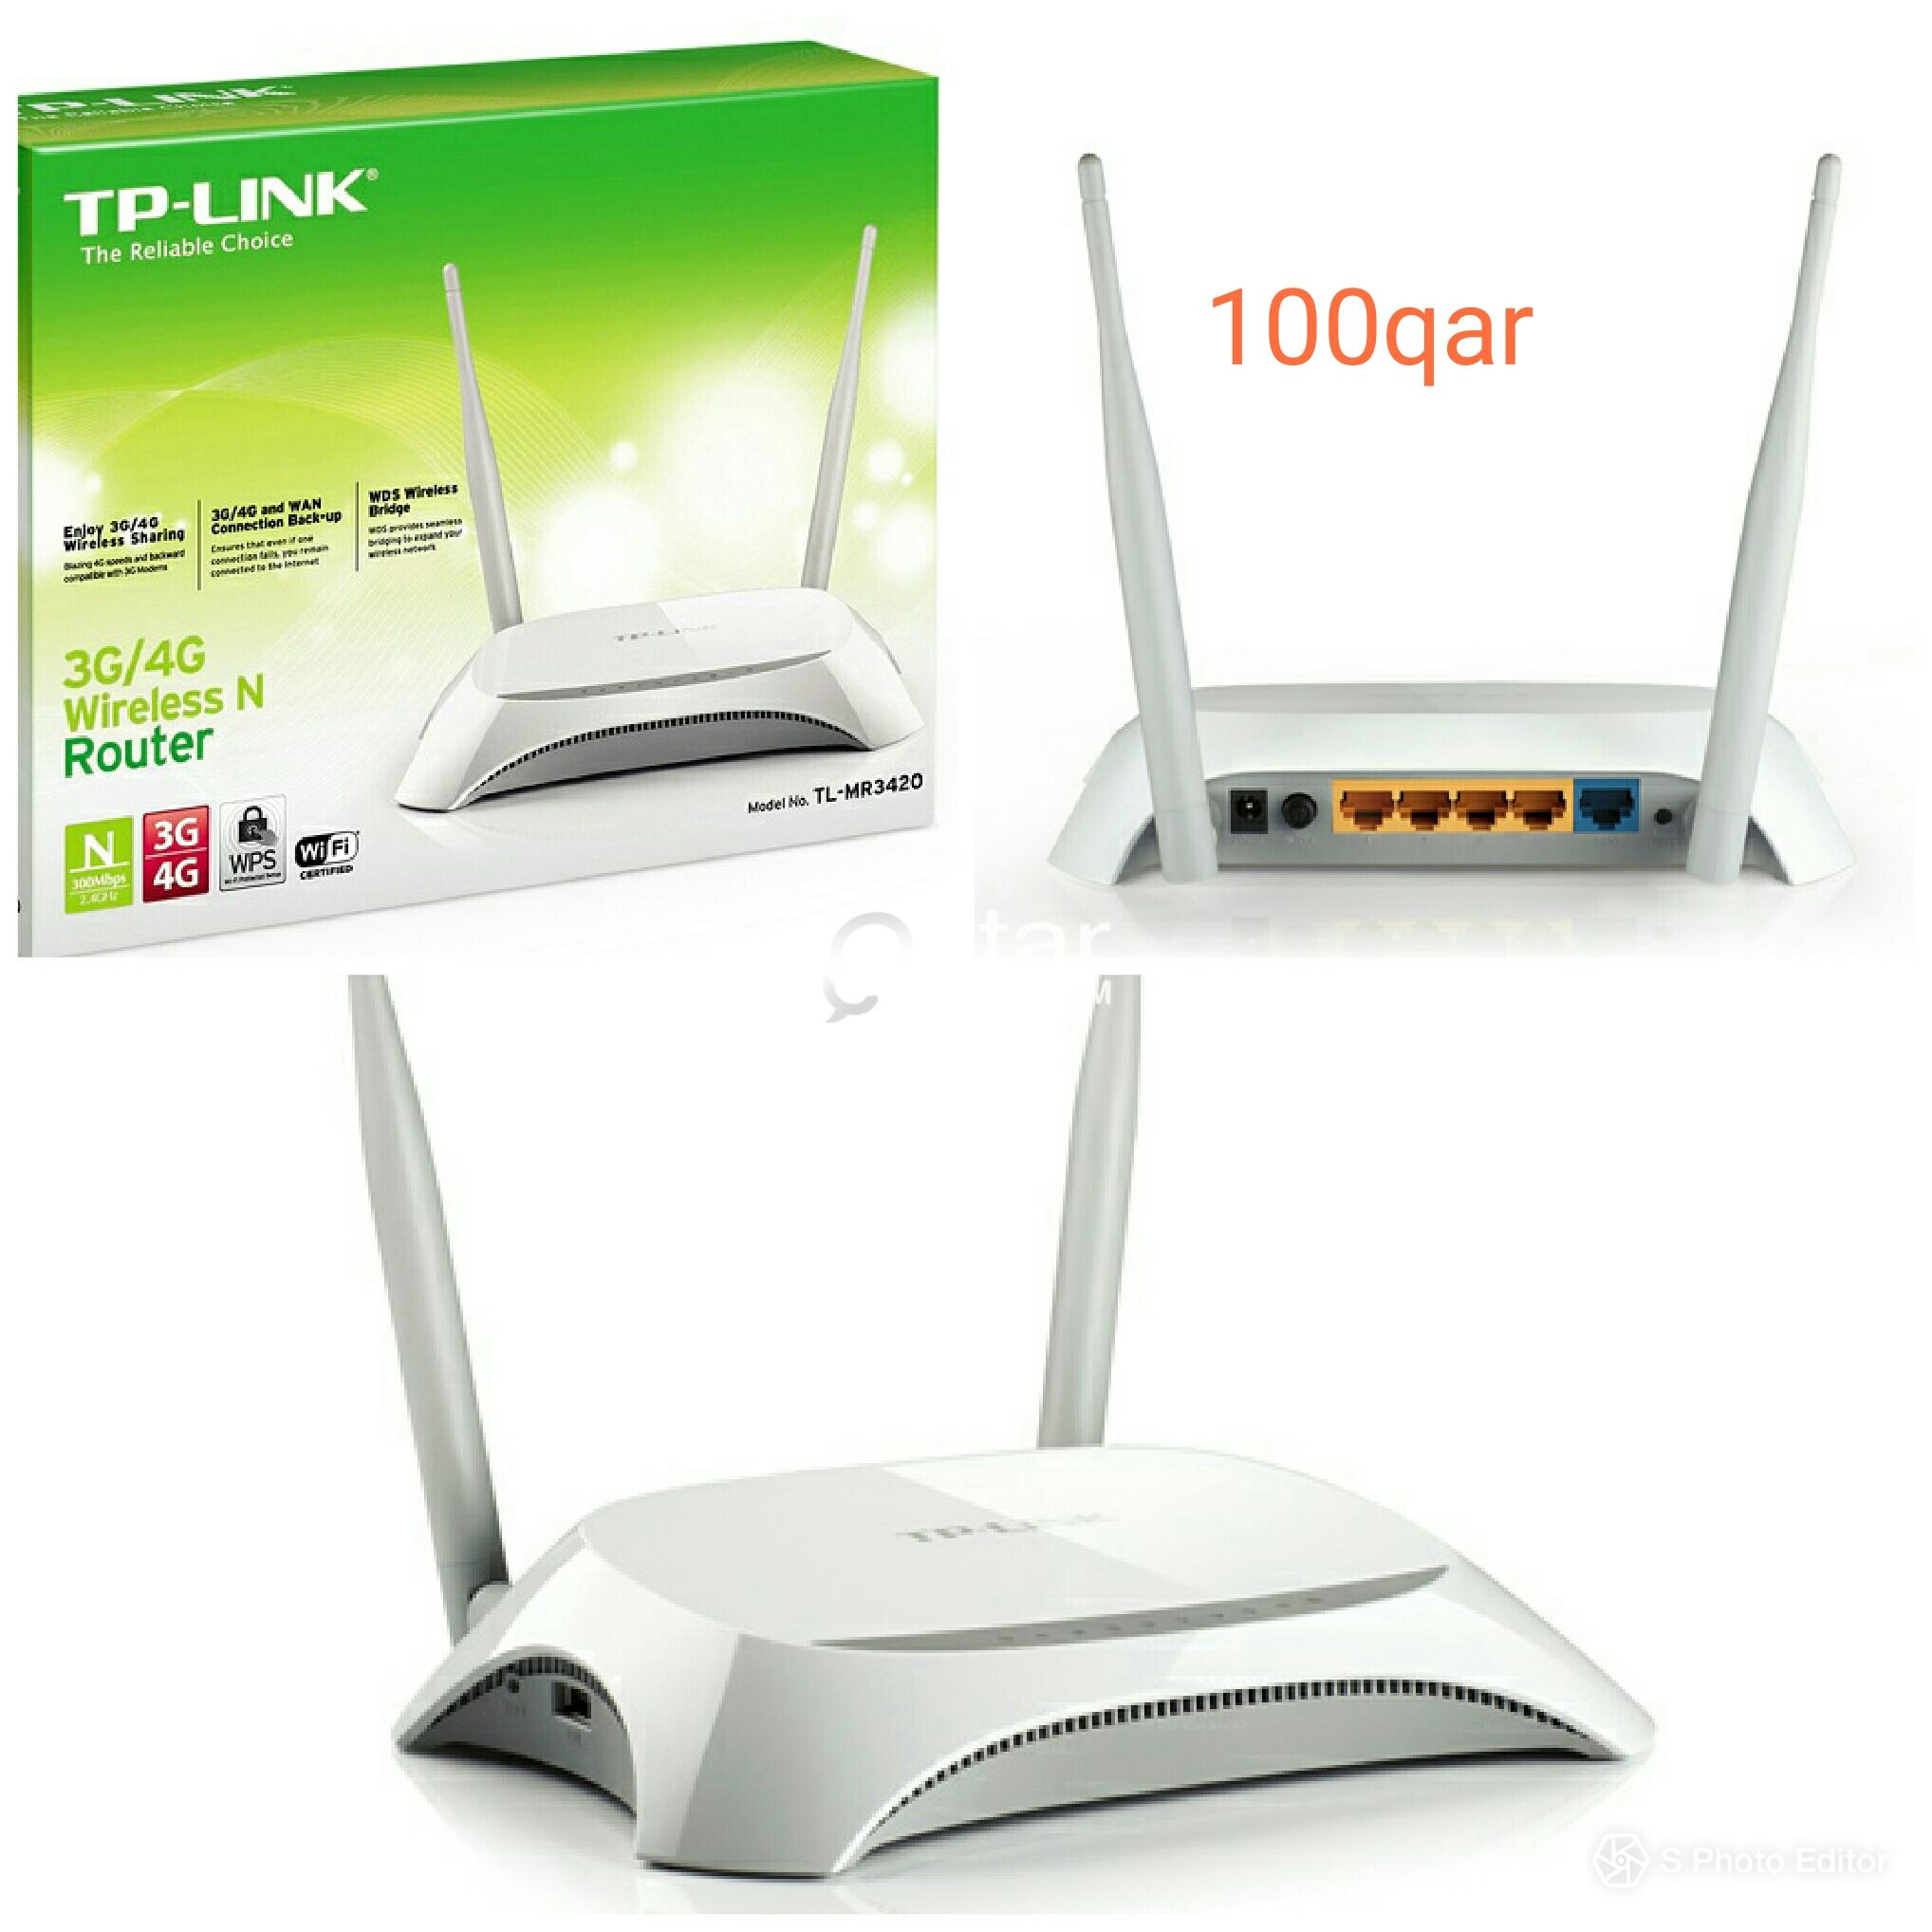 Tplink 300mbps Access Point 3g4g Wireless Router Qatar Living Tl Mr3420 N Title